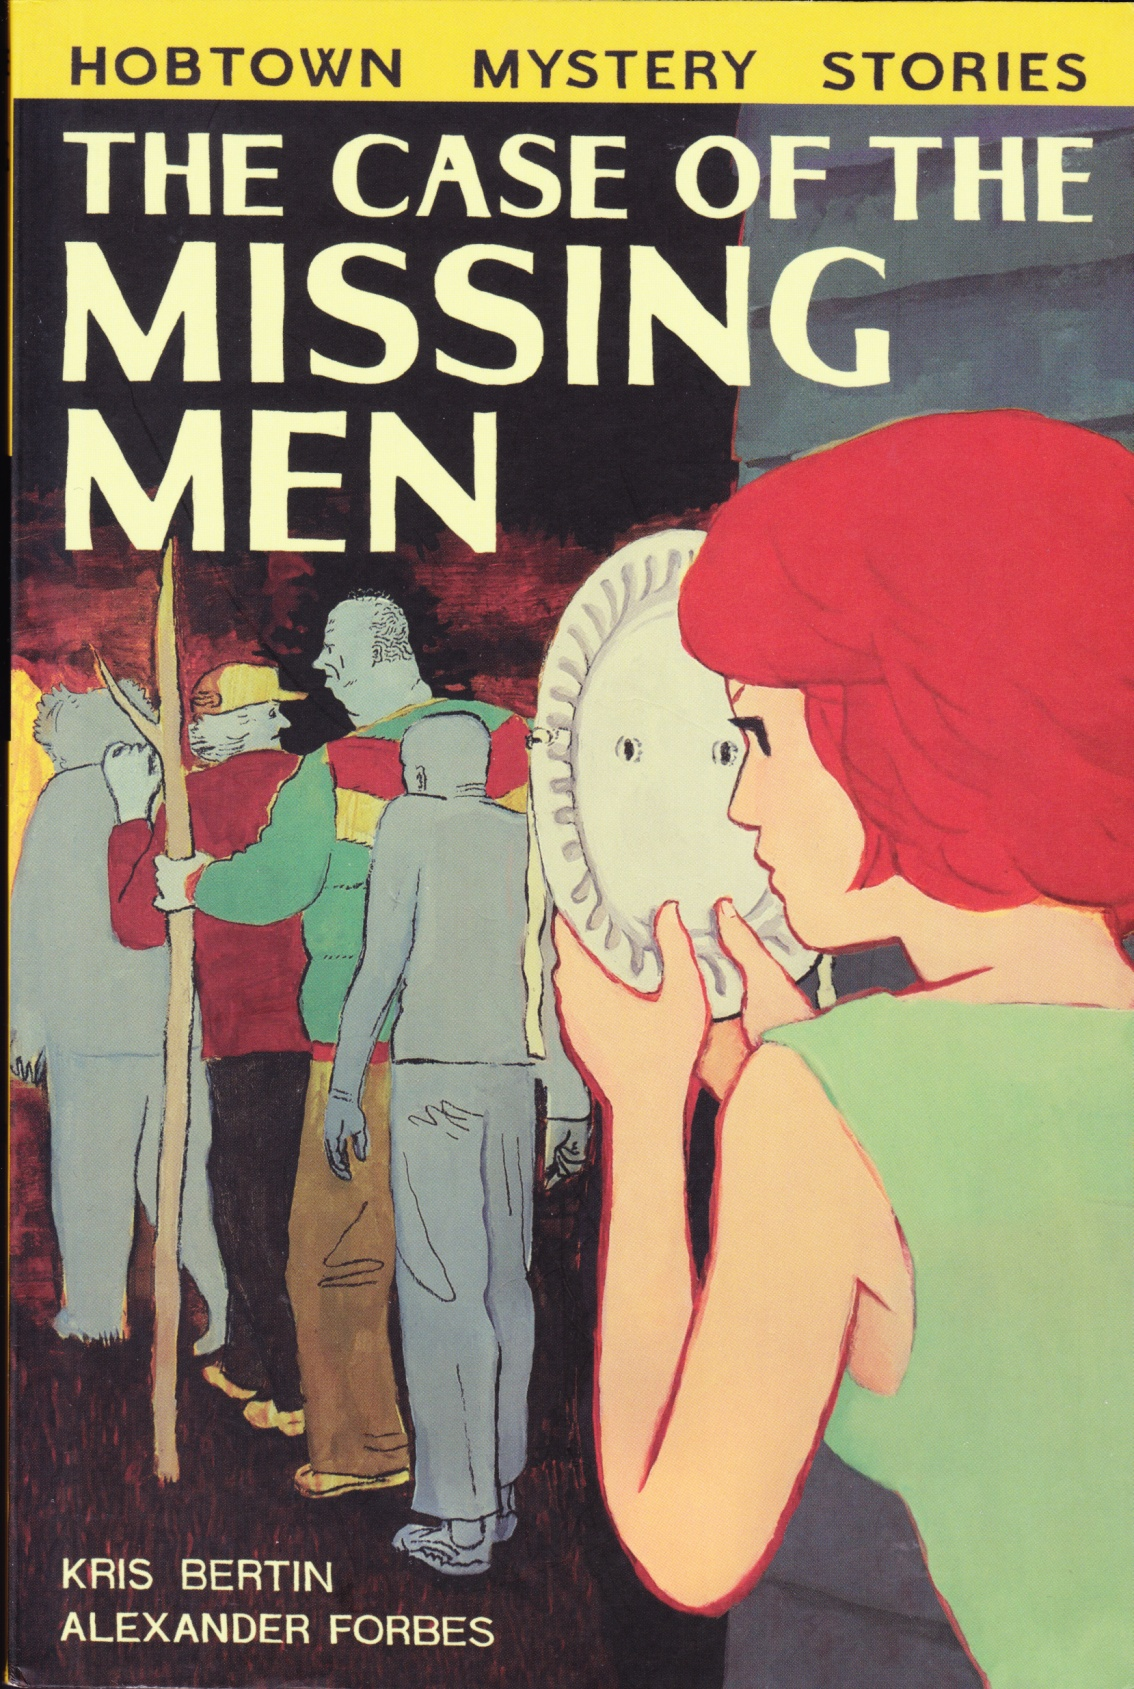 C:\Users\Robert\Documents\CARTOONING ILLUSTRATION ANIMATION\IMAGE BY CARTOONIST\F\FORBES Alex. Case of the Missing Men, 2017, fc.jpg